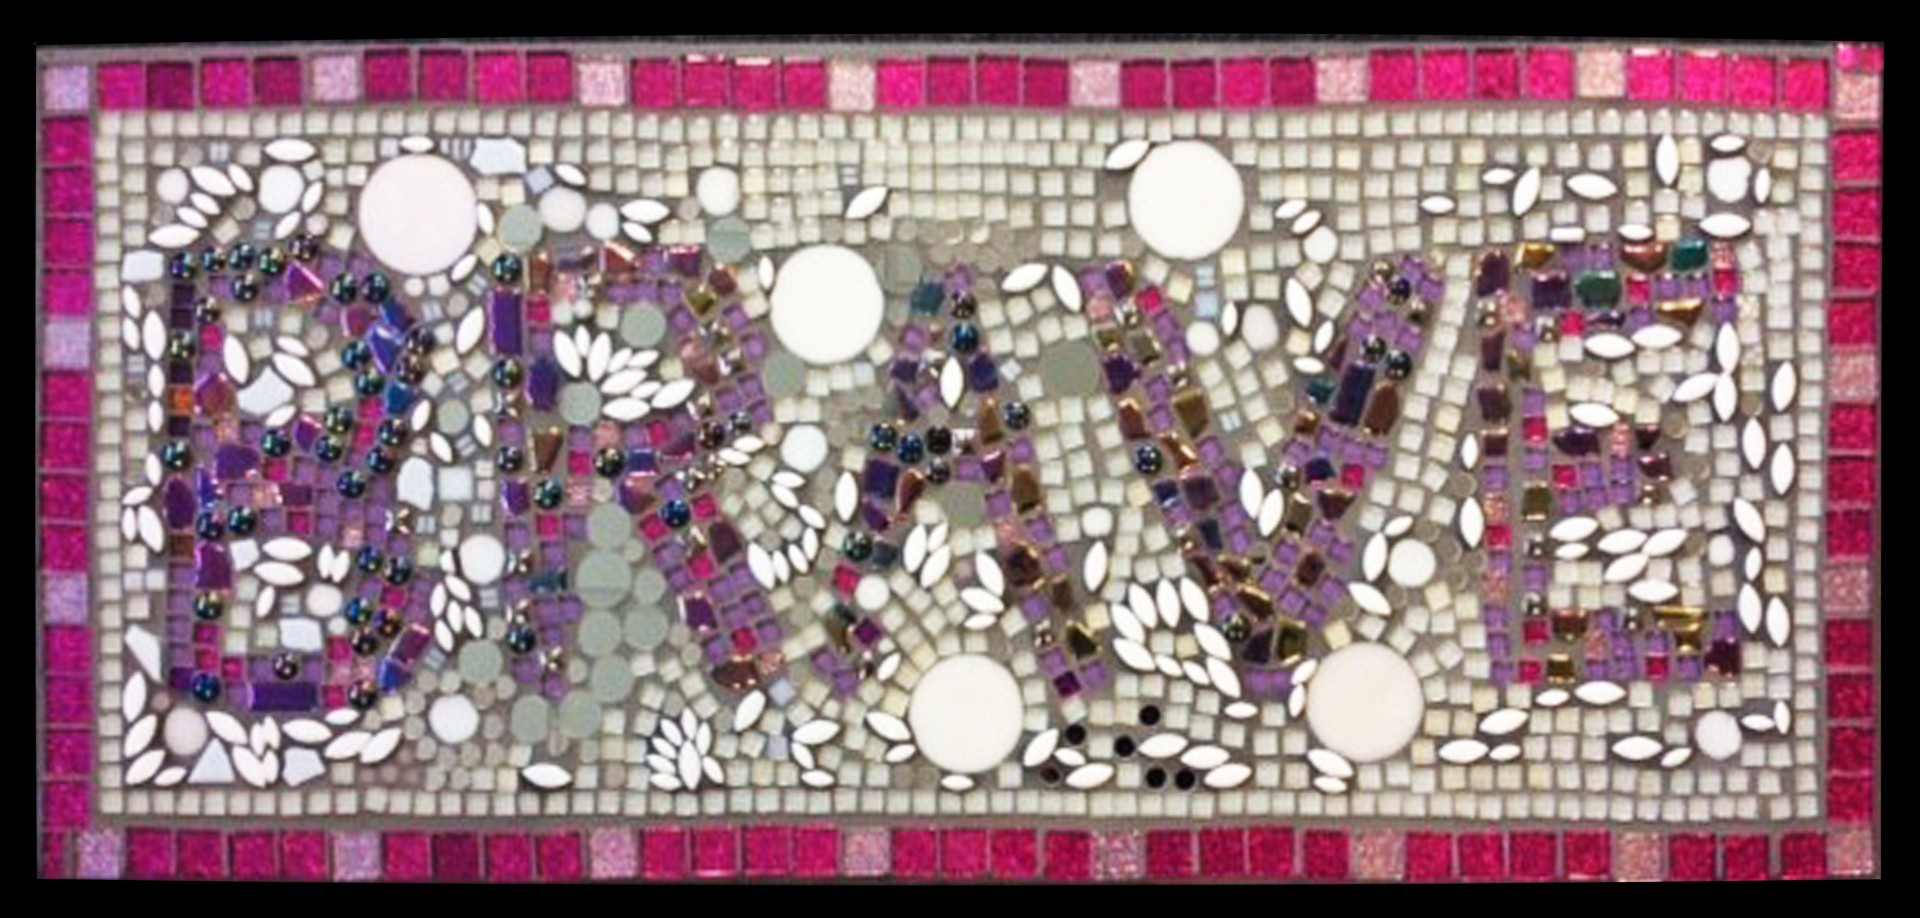 The Art of Wellbeing Brave Mosaic